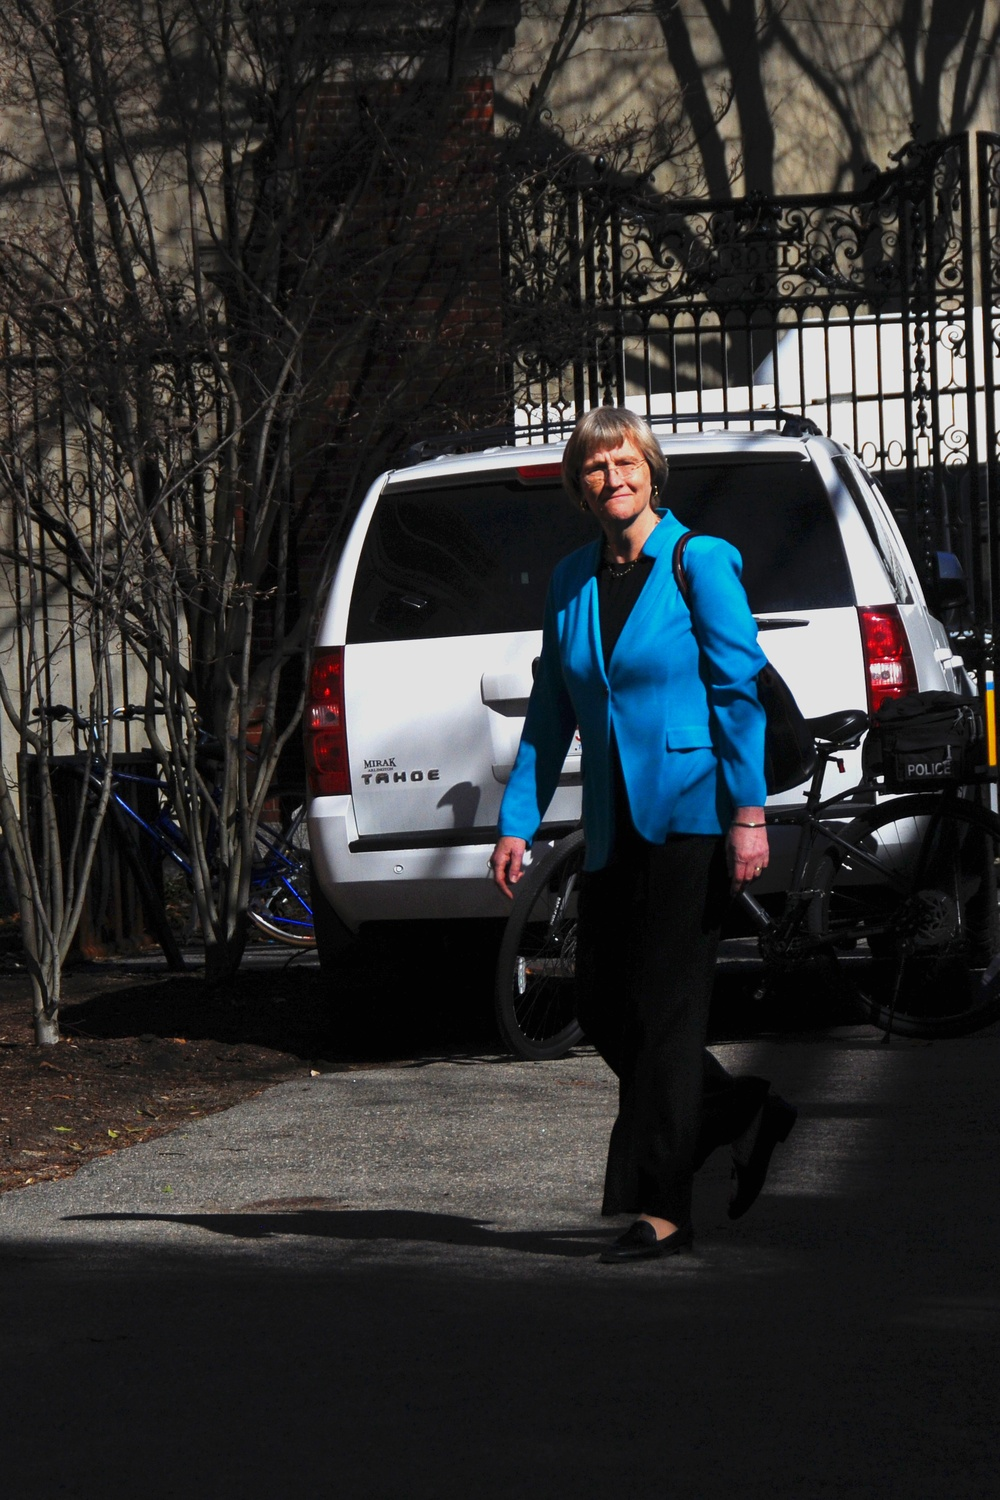 University President Drew G. Faust enters Emerson Hall, where members of the student activist group Divest Harvard attempted to confront her before she introduced a lecture on Wednesday afternoon. Security personnel had  placed guard rails between Loeb House and the lecture hall.